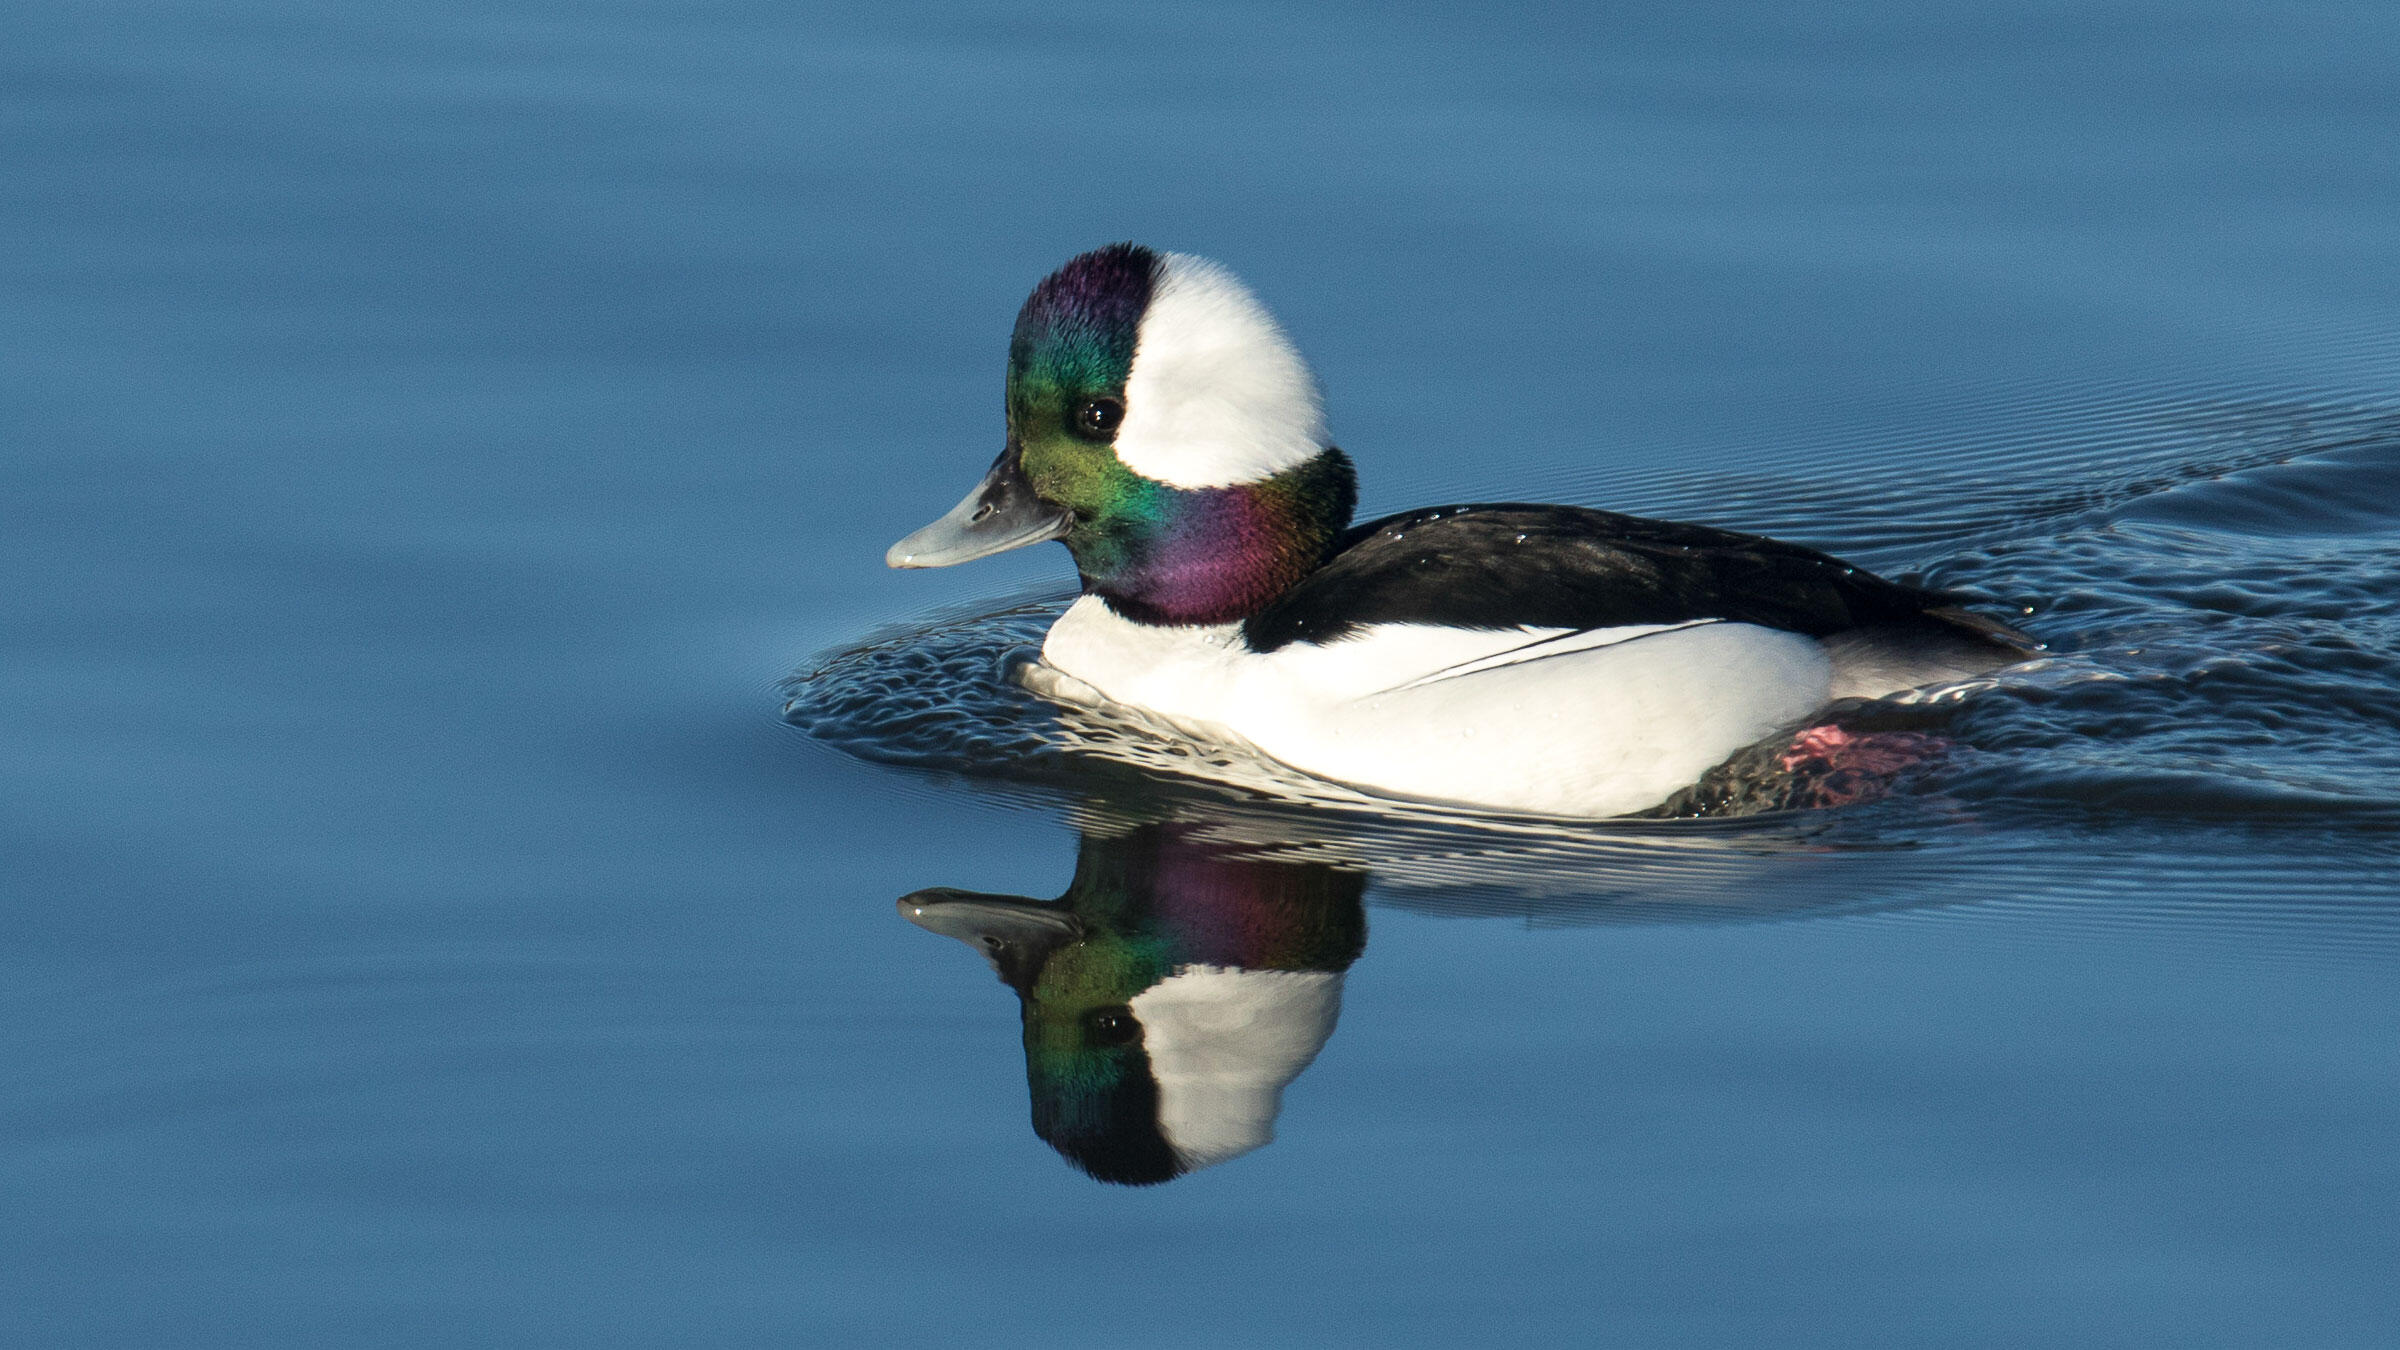 Don't be fooled: From a distance, the male Bufflehead looks all black and white, but an up-close inspection reveals an iridescent purple-green on its head feathers. Pam Polcyn/Audubon Photography Awards